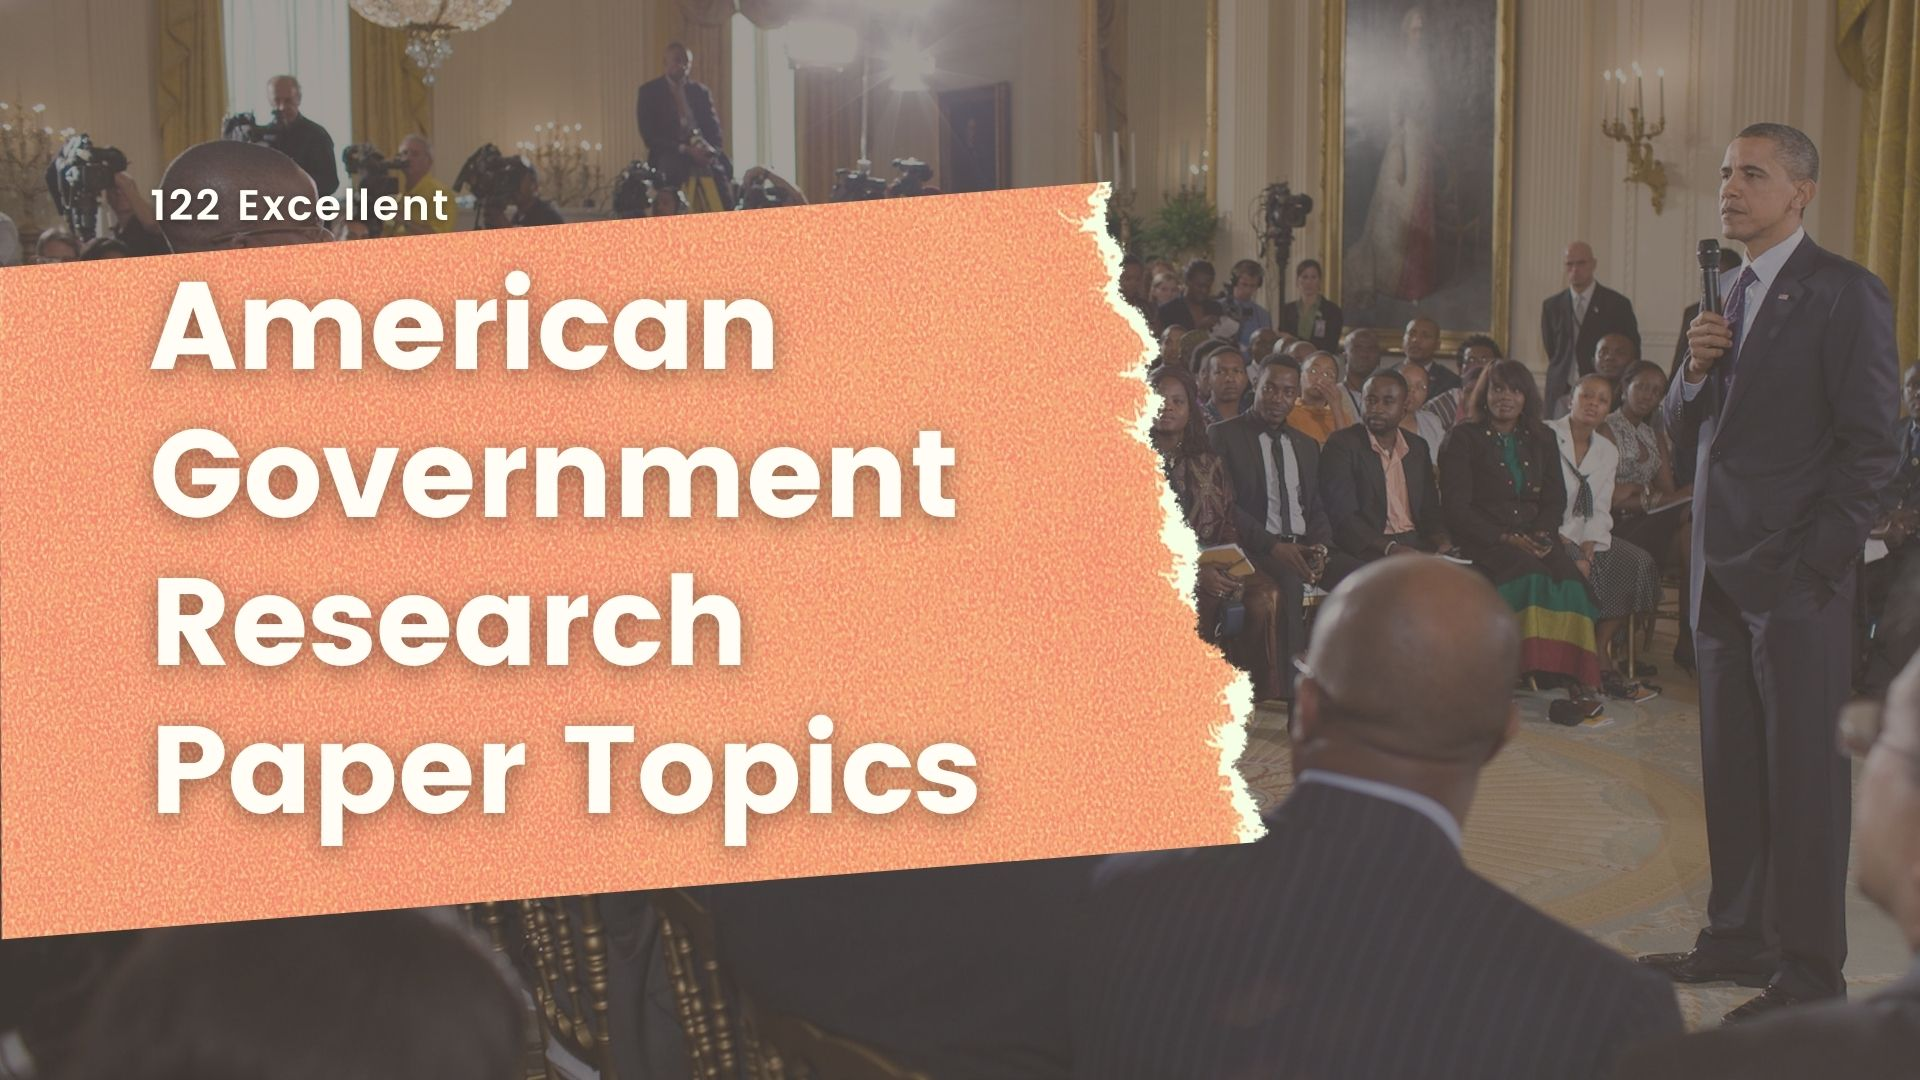 American Government Research Paper Topics